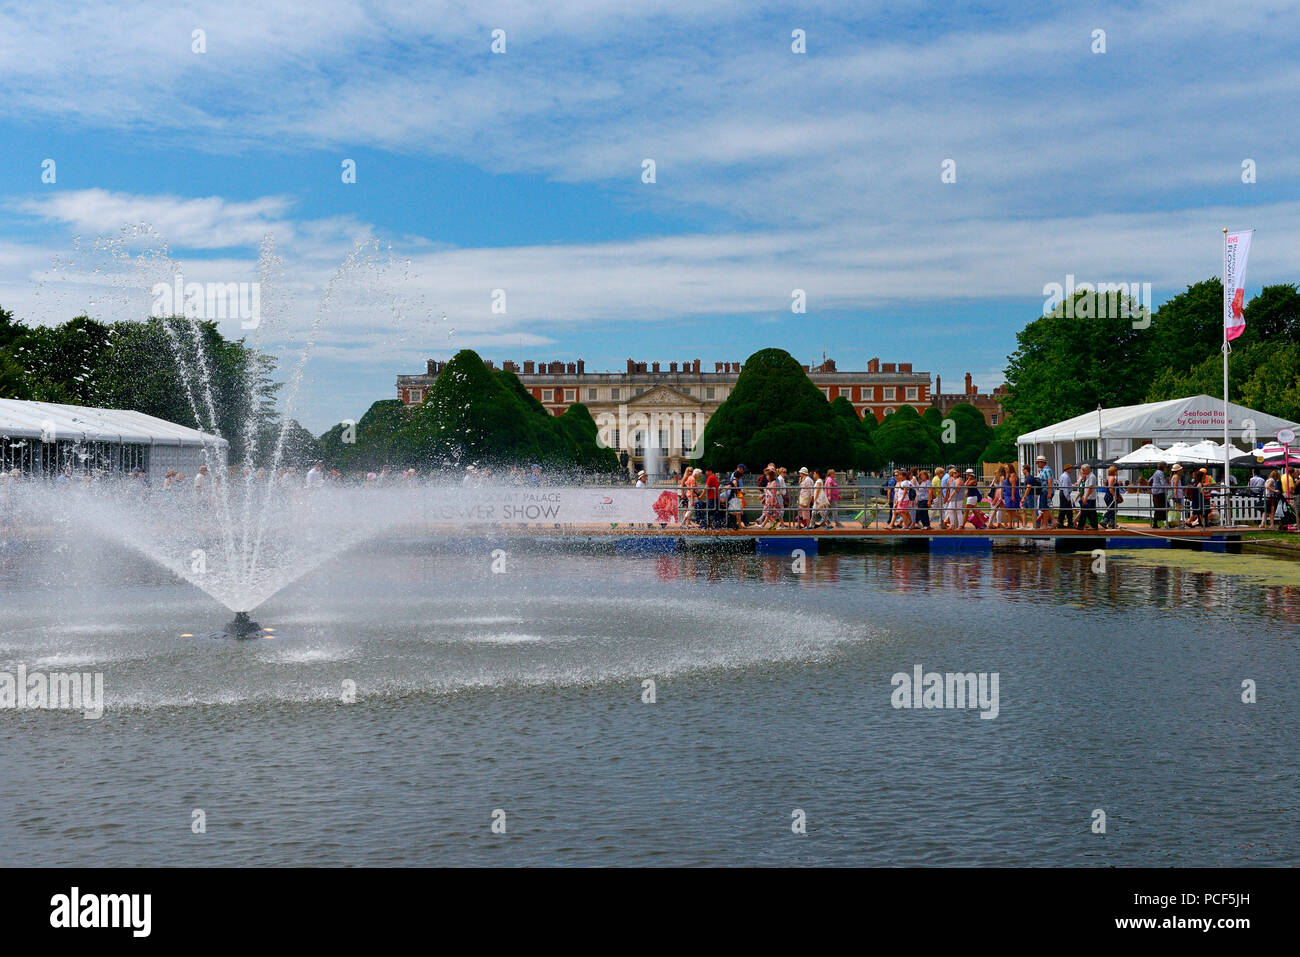 Hampton Court Flower Show, Hampton Court Palace Flower Show, Royal Horticultural Society London, England, Grossbritannien, Europa - Stock Image